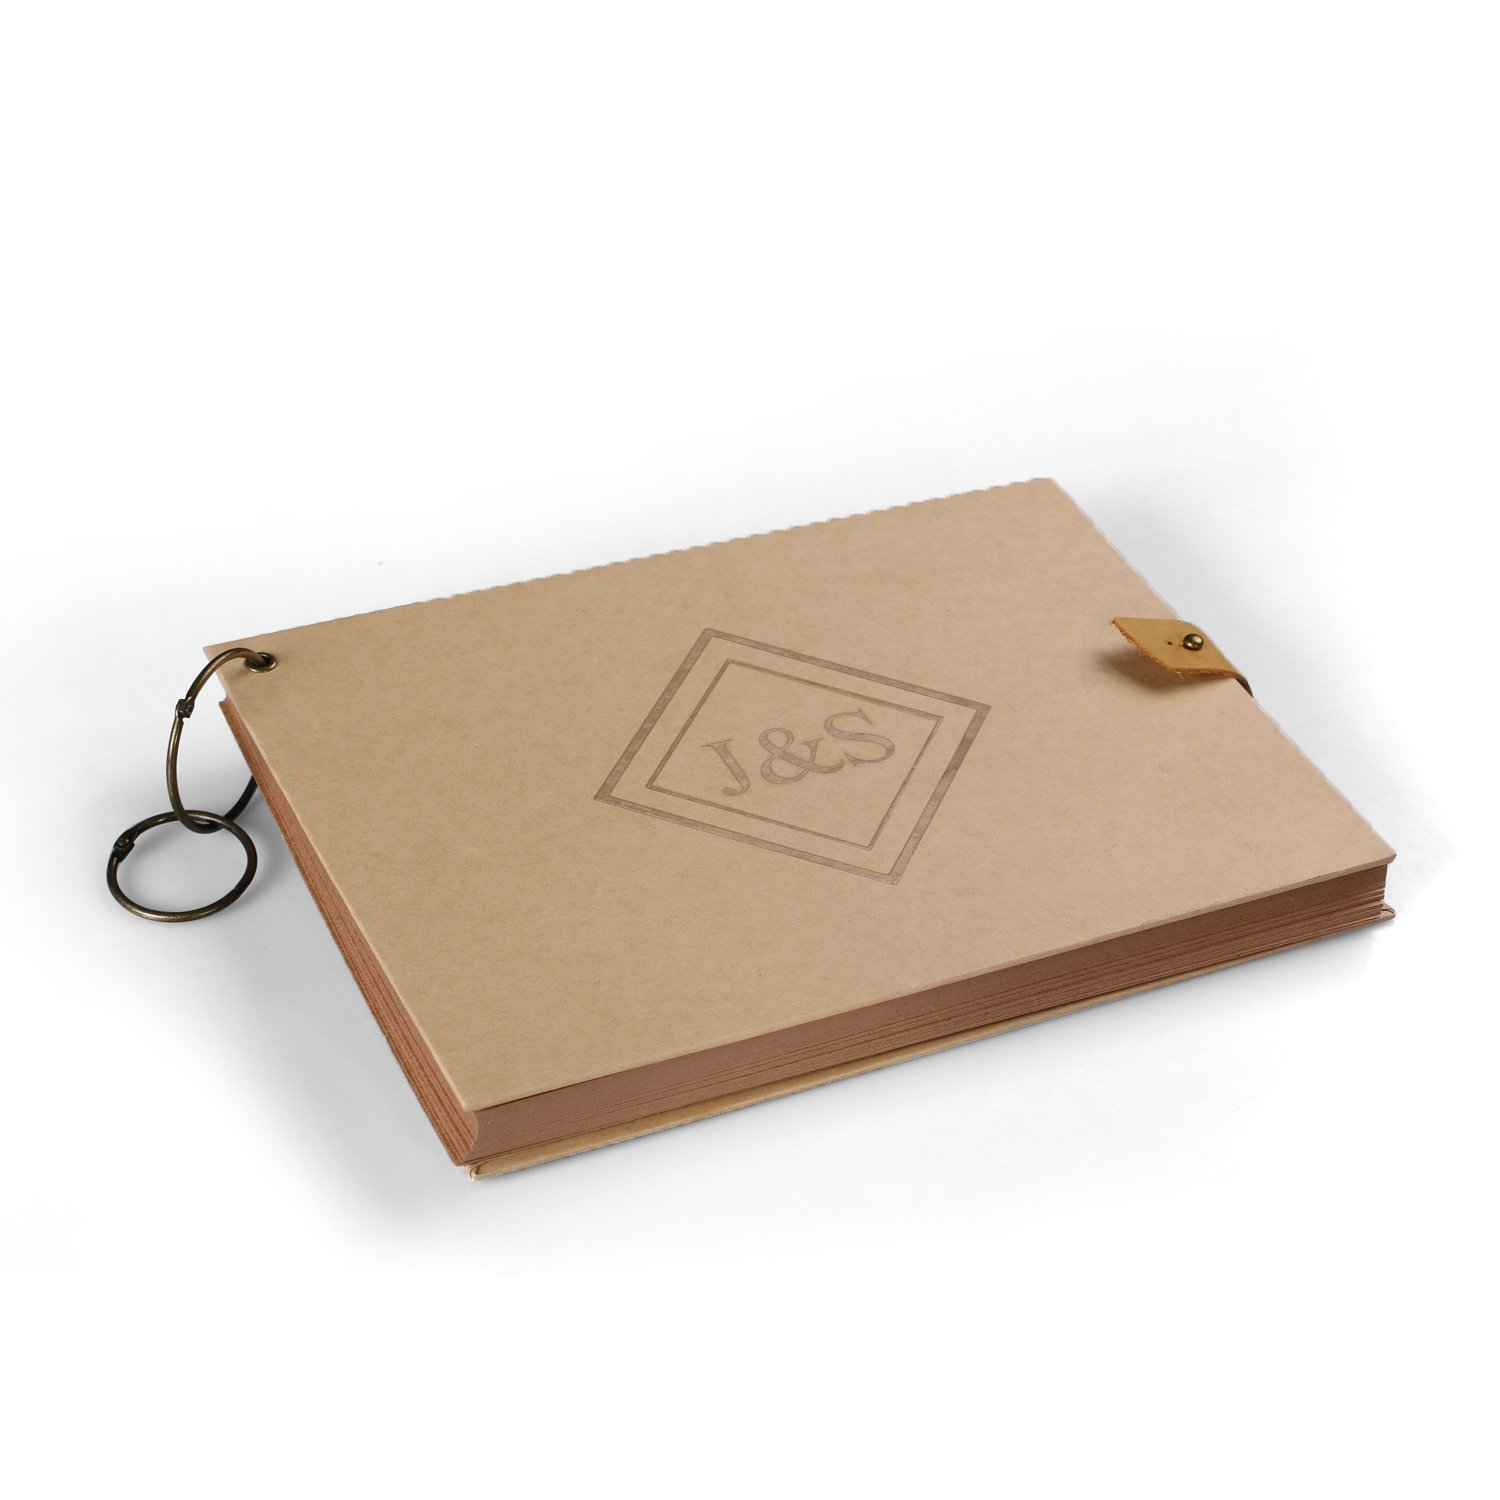 Cairnstone Personalised Scrapbook or Guestbook - Free Custom Engraving with Name, Logo or Design